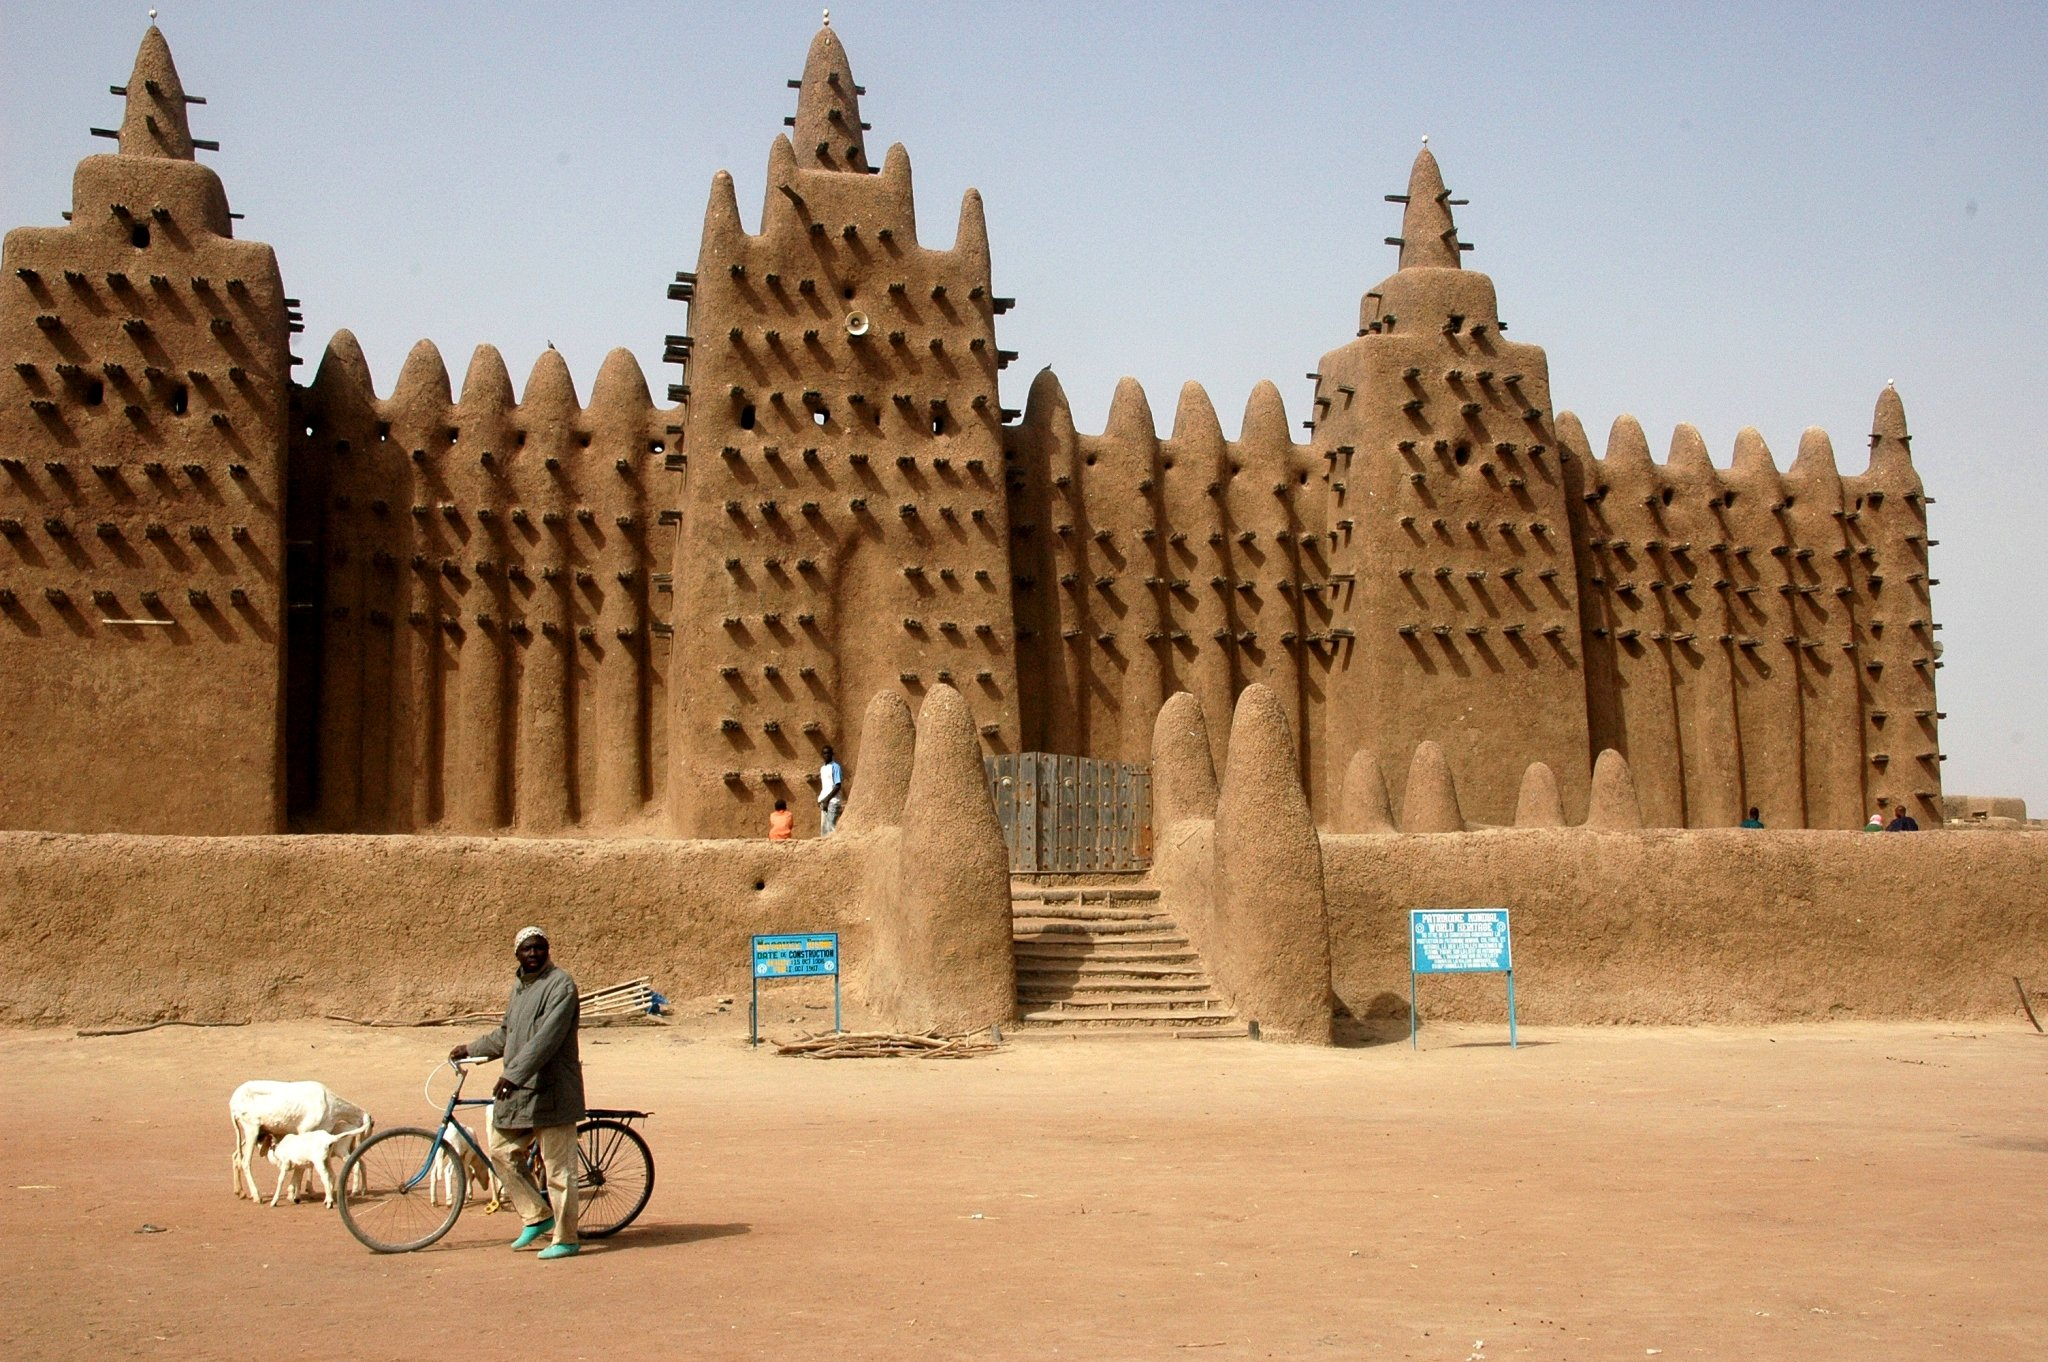 Bucket list item - to visit Djenne's Great Mud Mosque